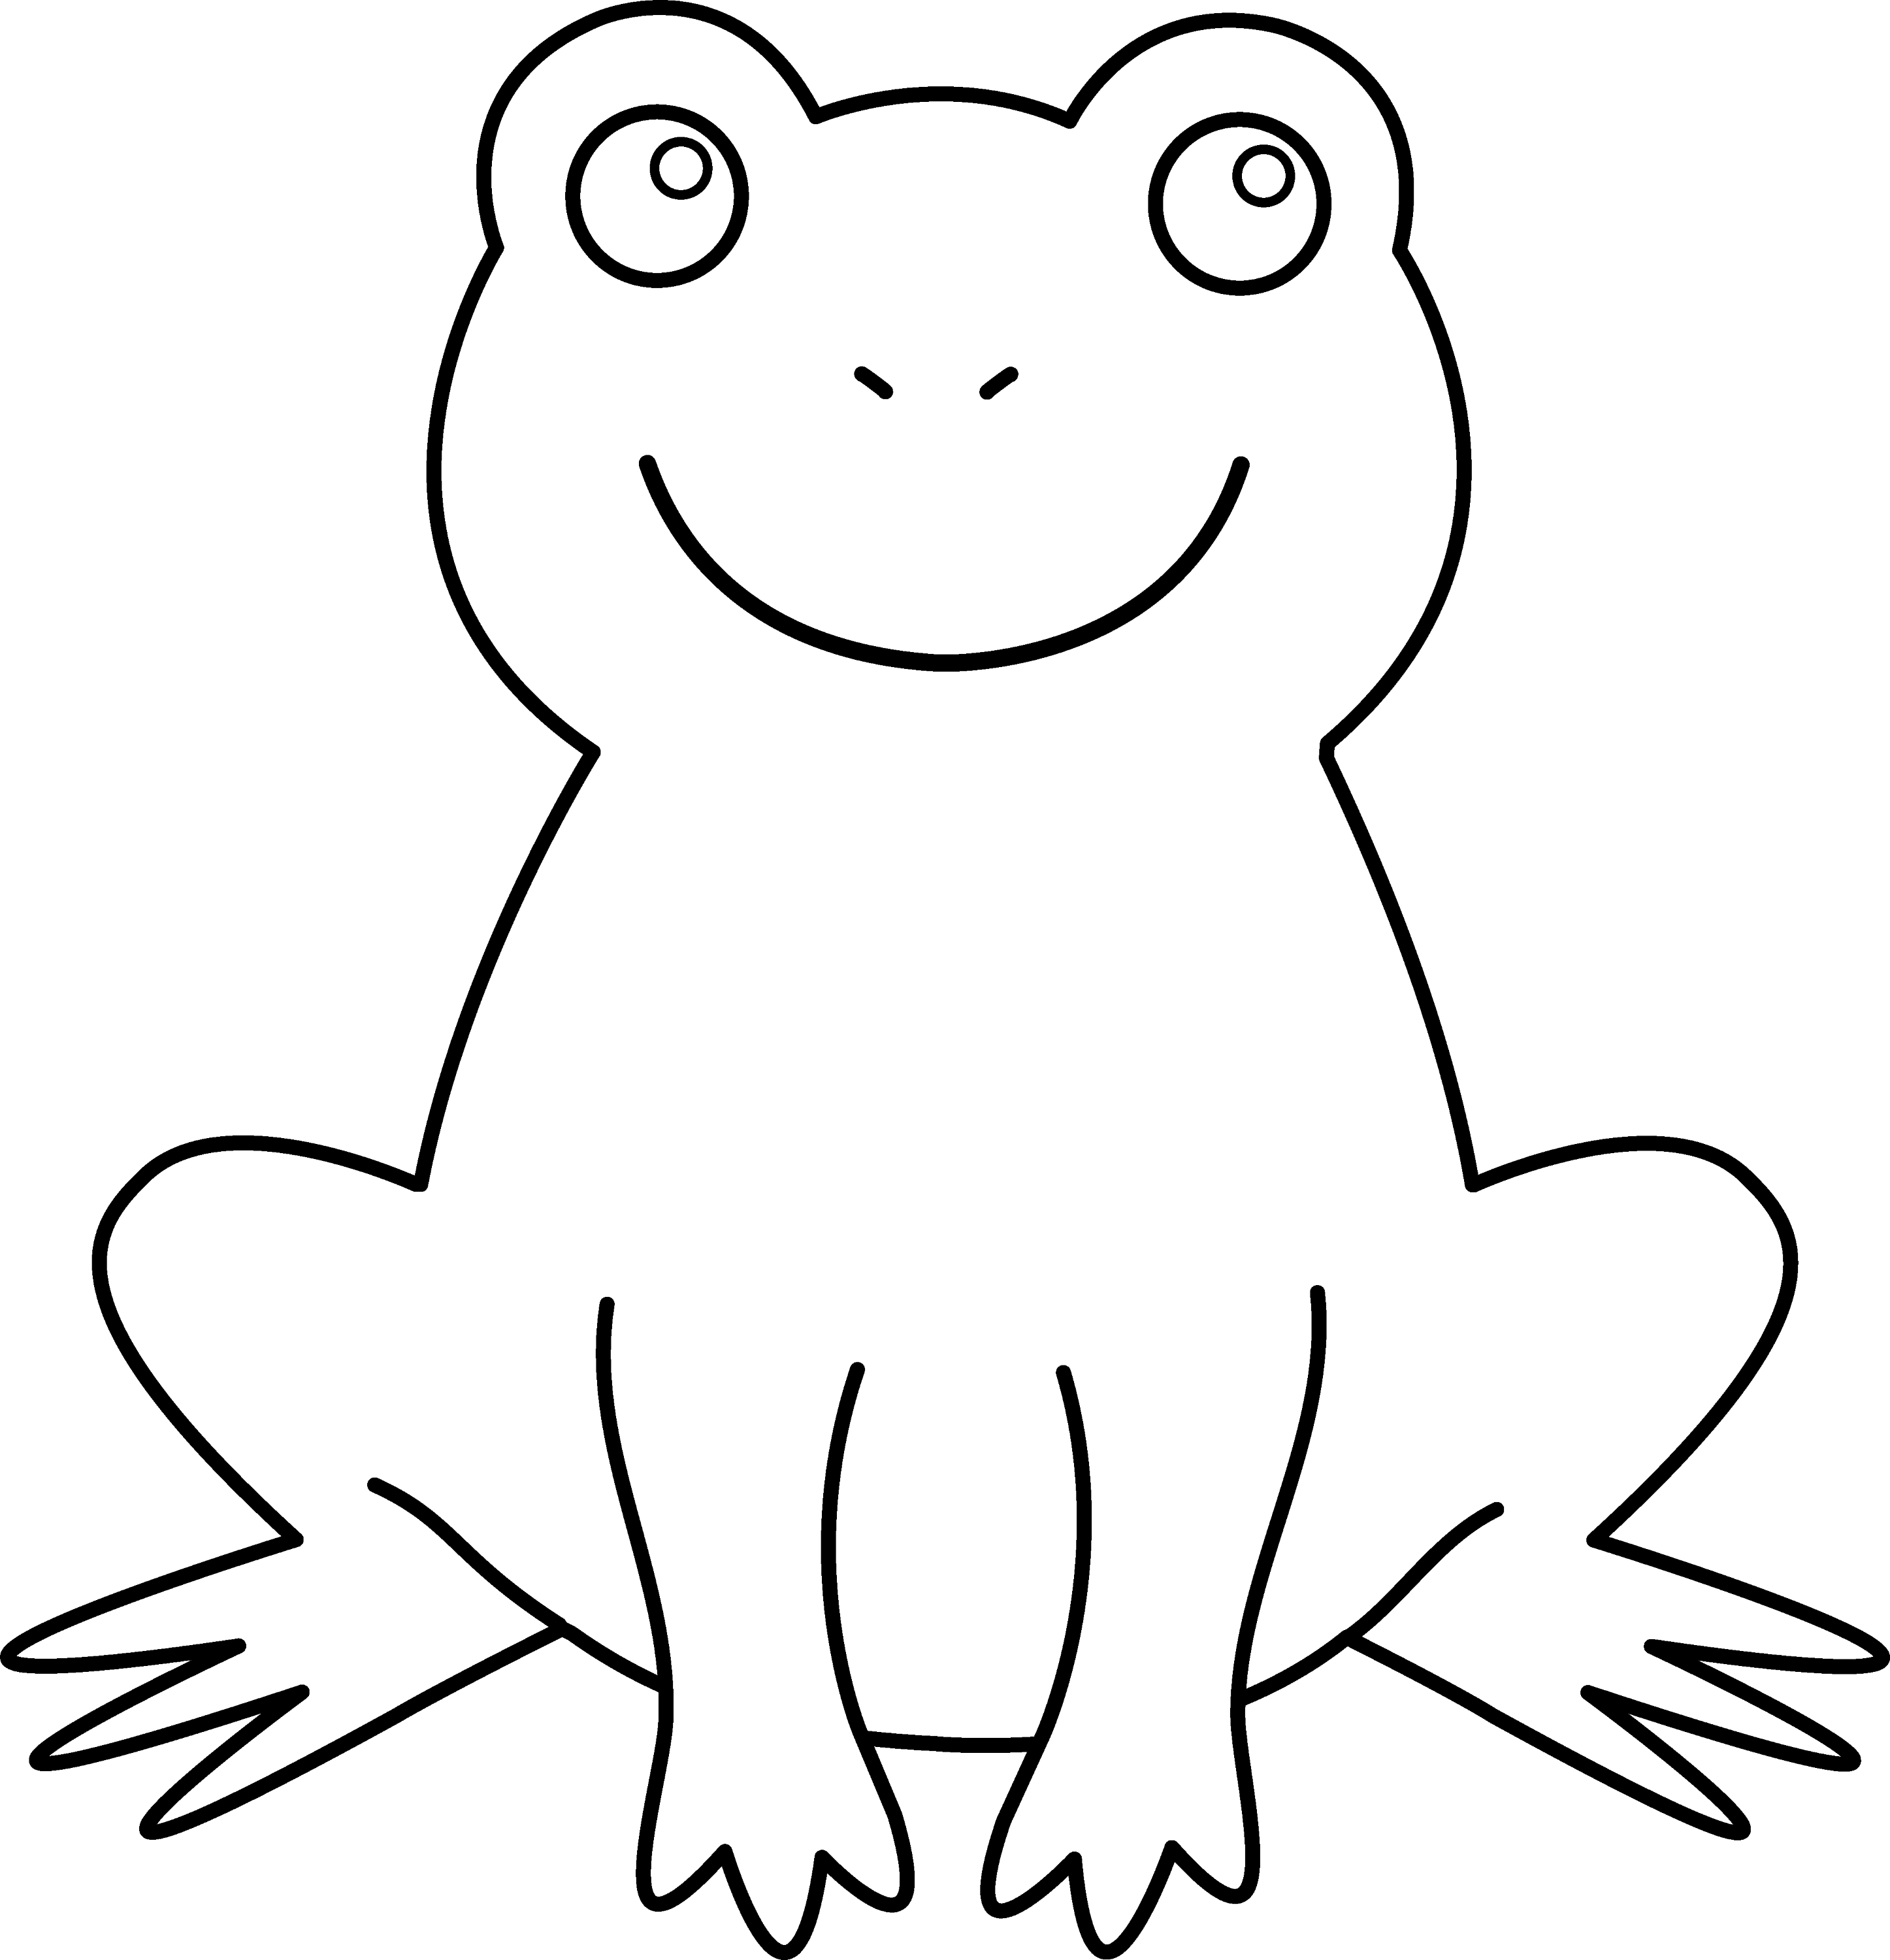 coloring cartoon clipart colorable cute frog free clip art coloring cartoon clipart